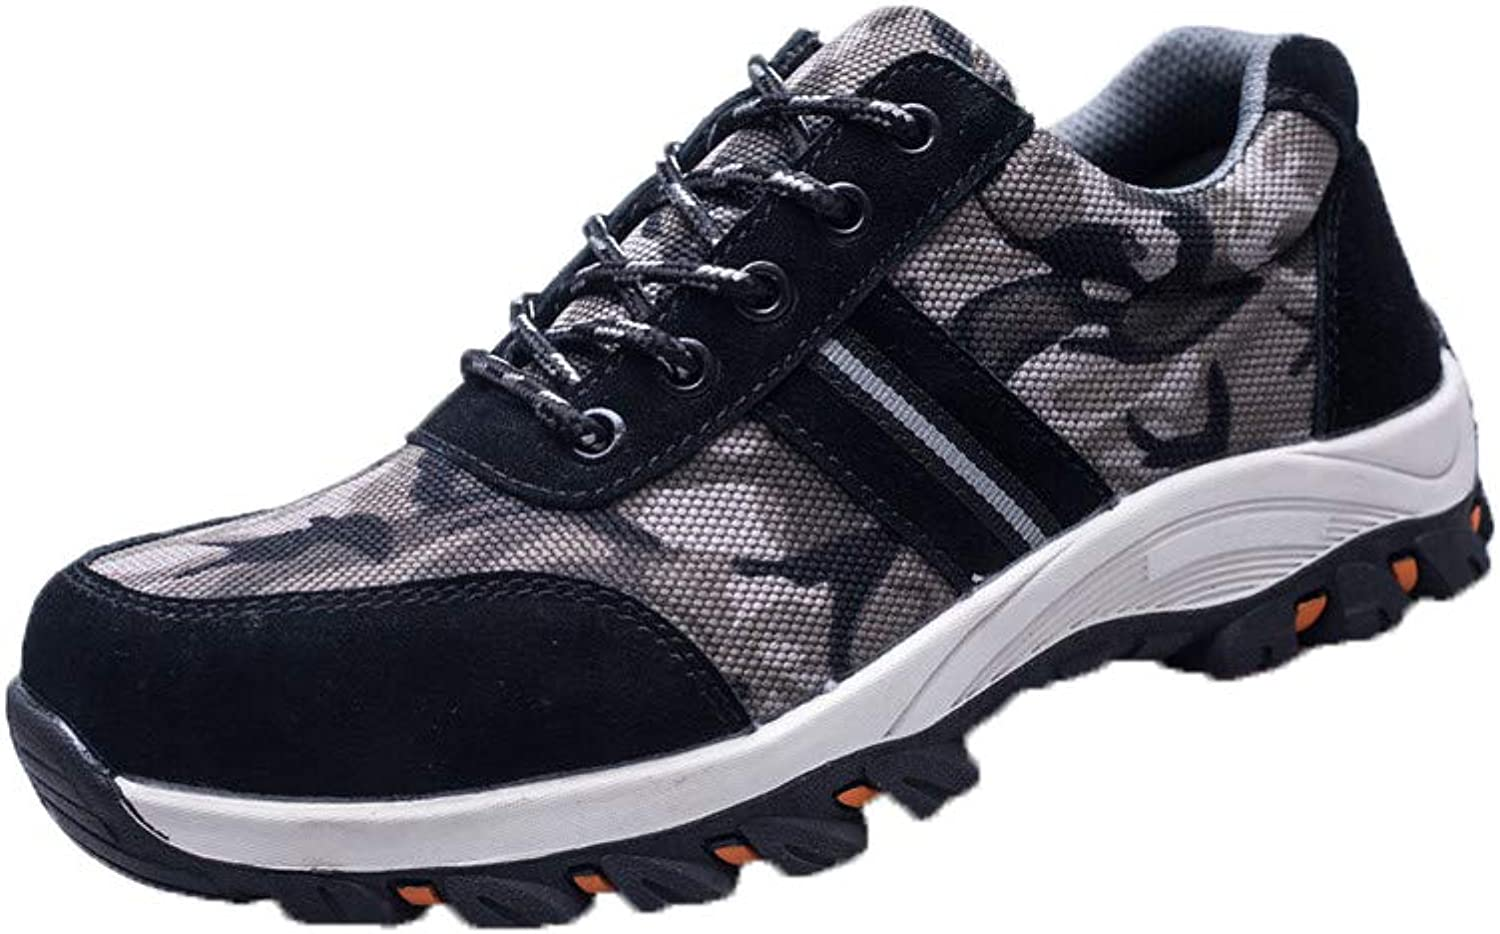 Exclusive shoesbox Steel Toe Work Safety shoes Men Reflective Casual Breathable Outdoor Sneakers